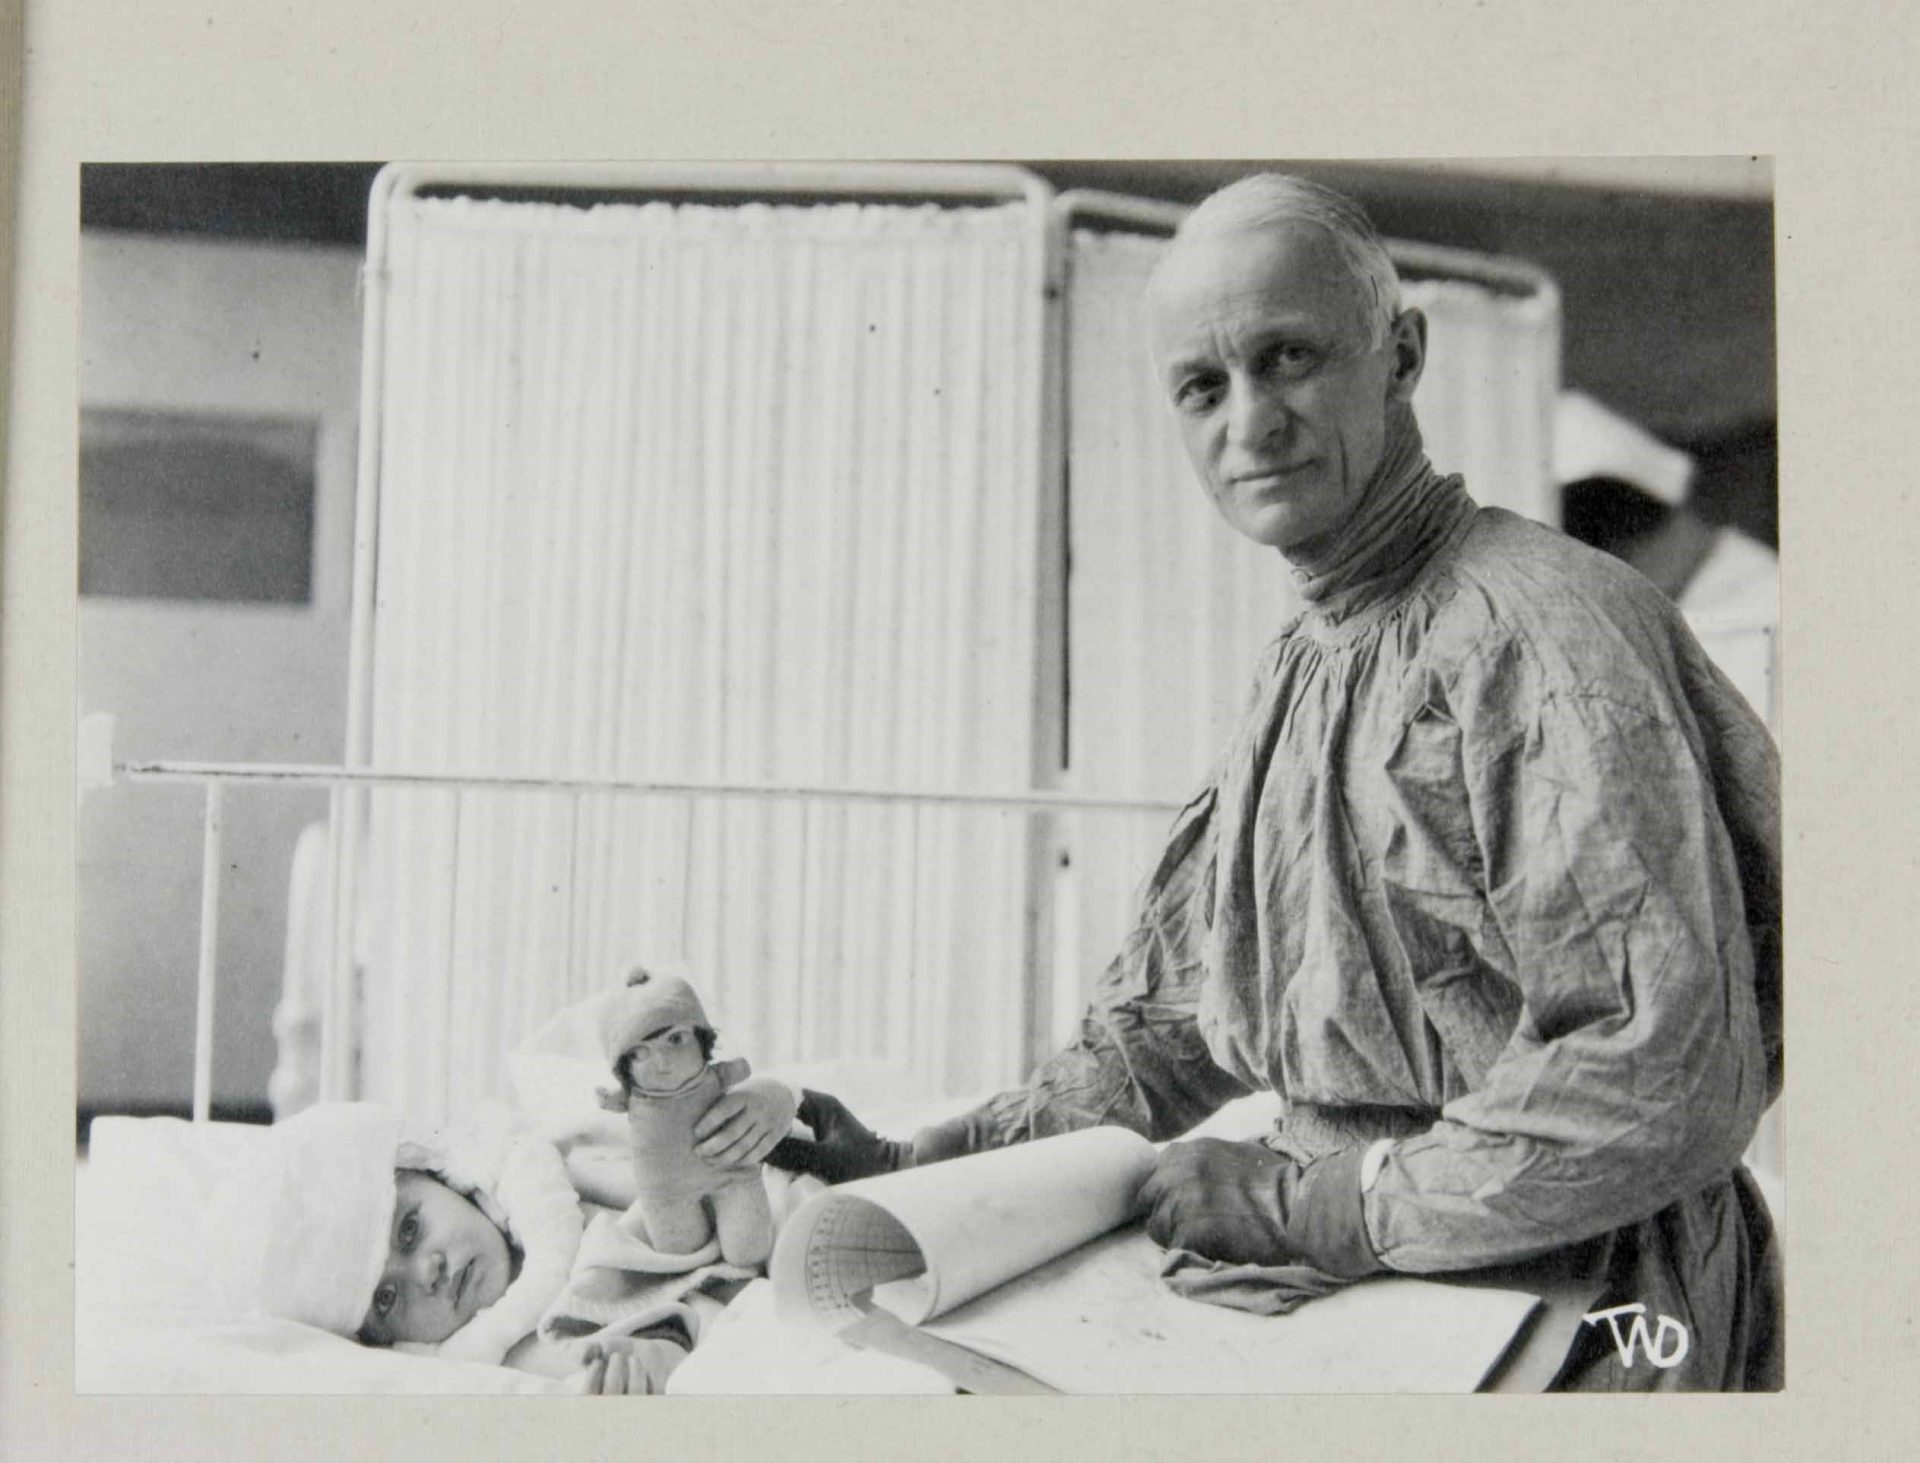 Cushing at the Bedside of a Child